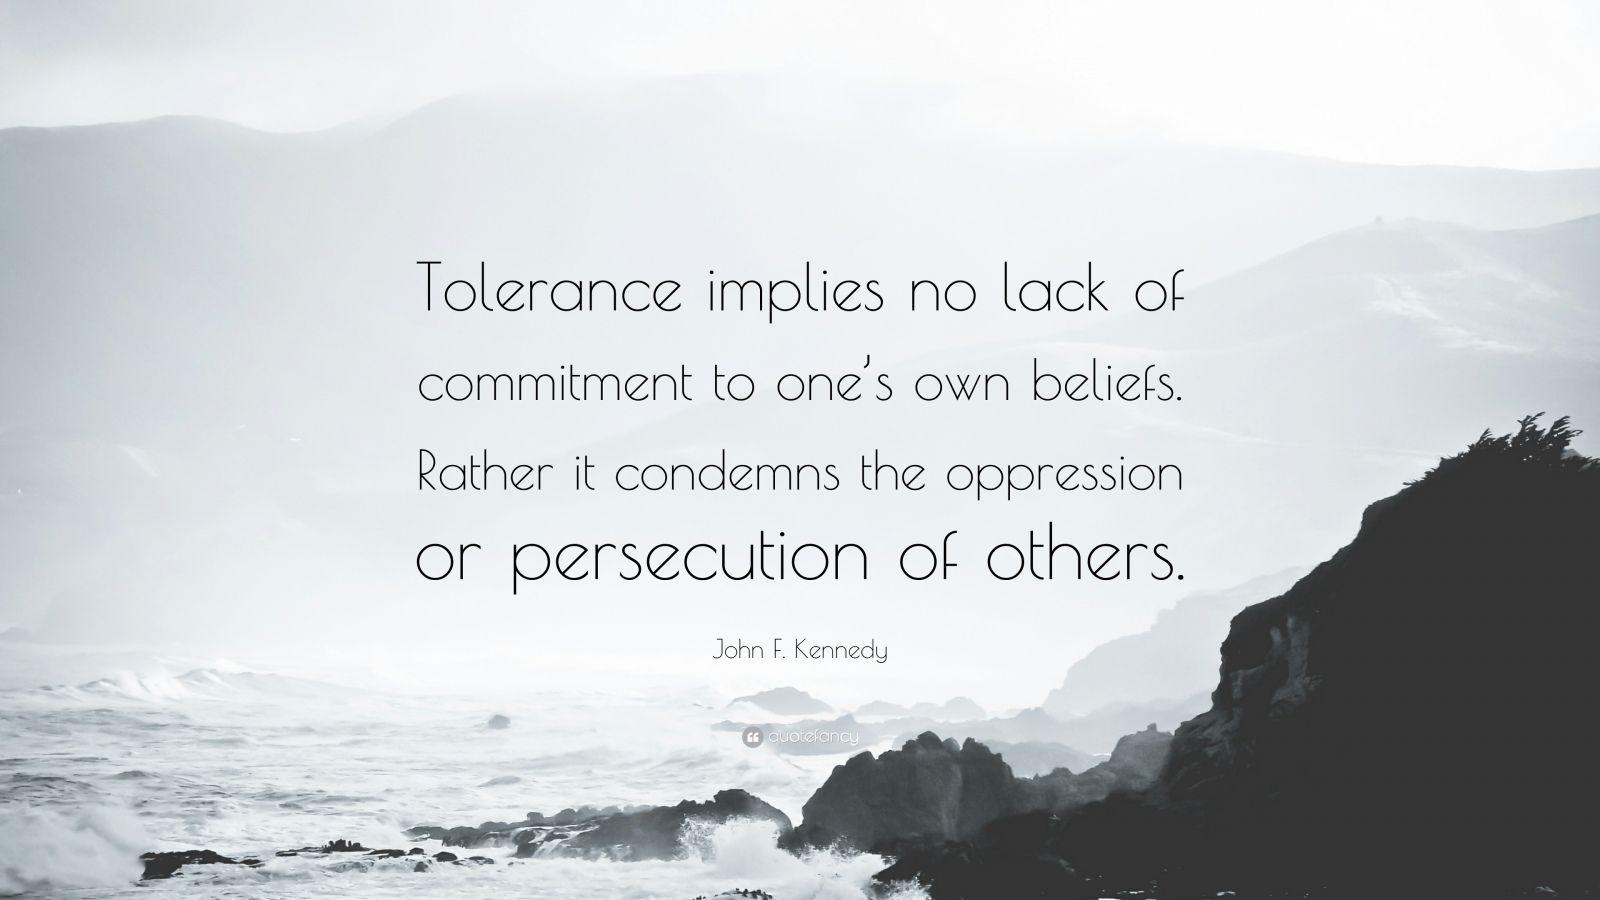 """John F. Kennedy Quote: """"Tolerance implies no lack of commitment to one's own beliefs. Rather it condemns the oppression or persecution of others."""""""